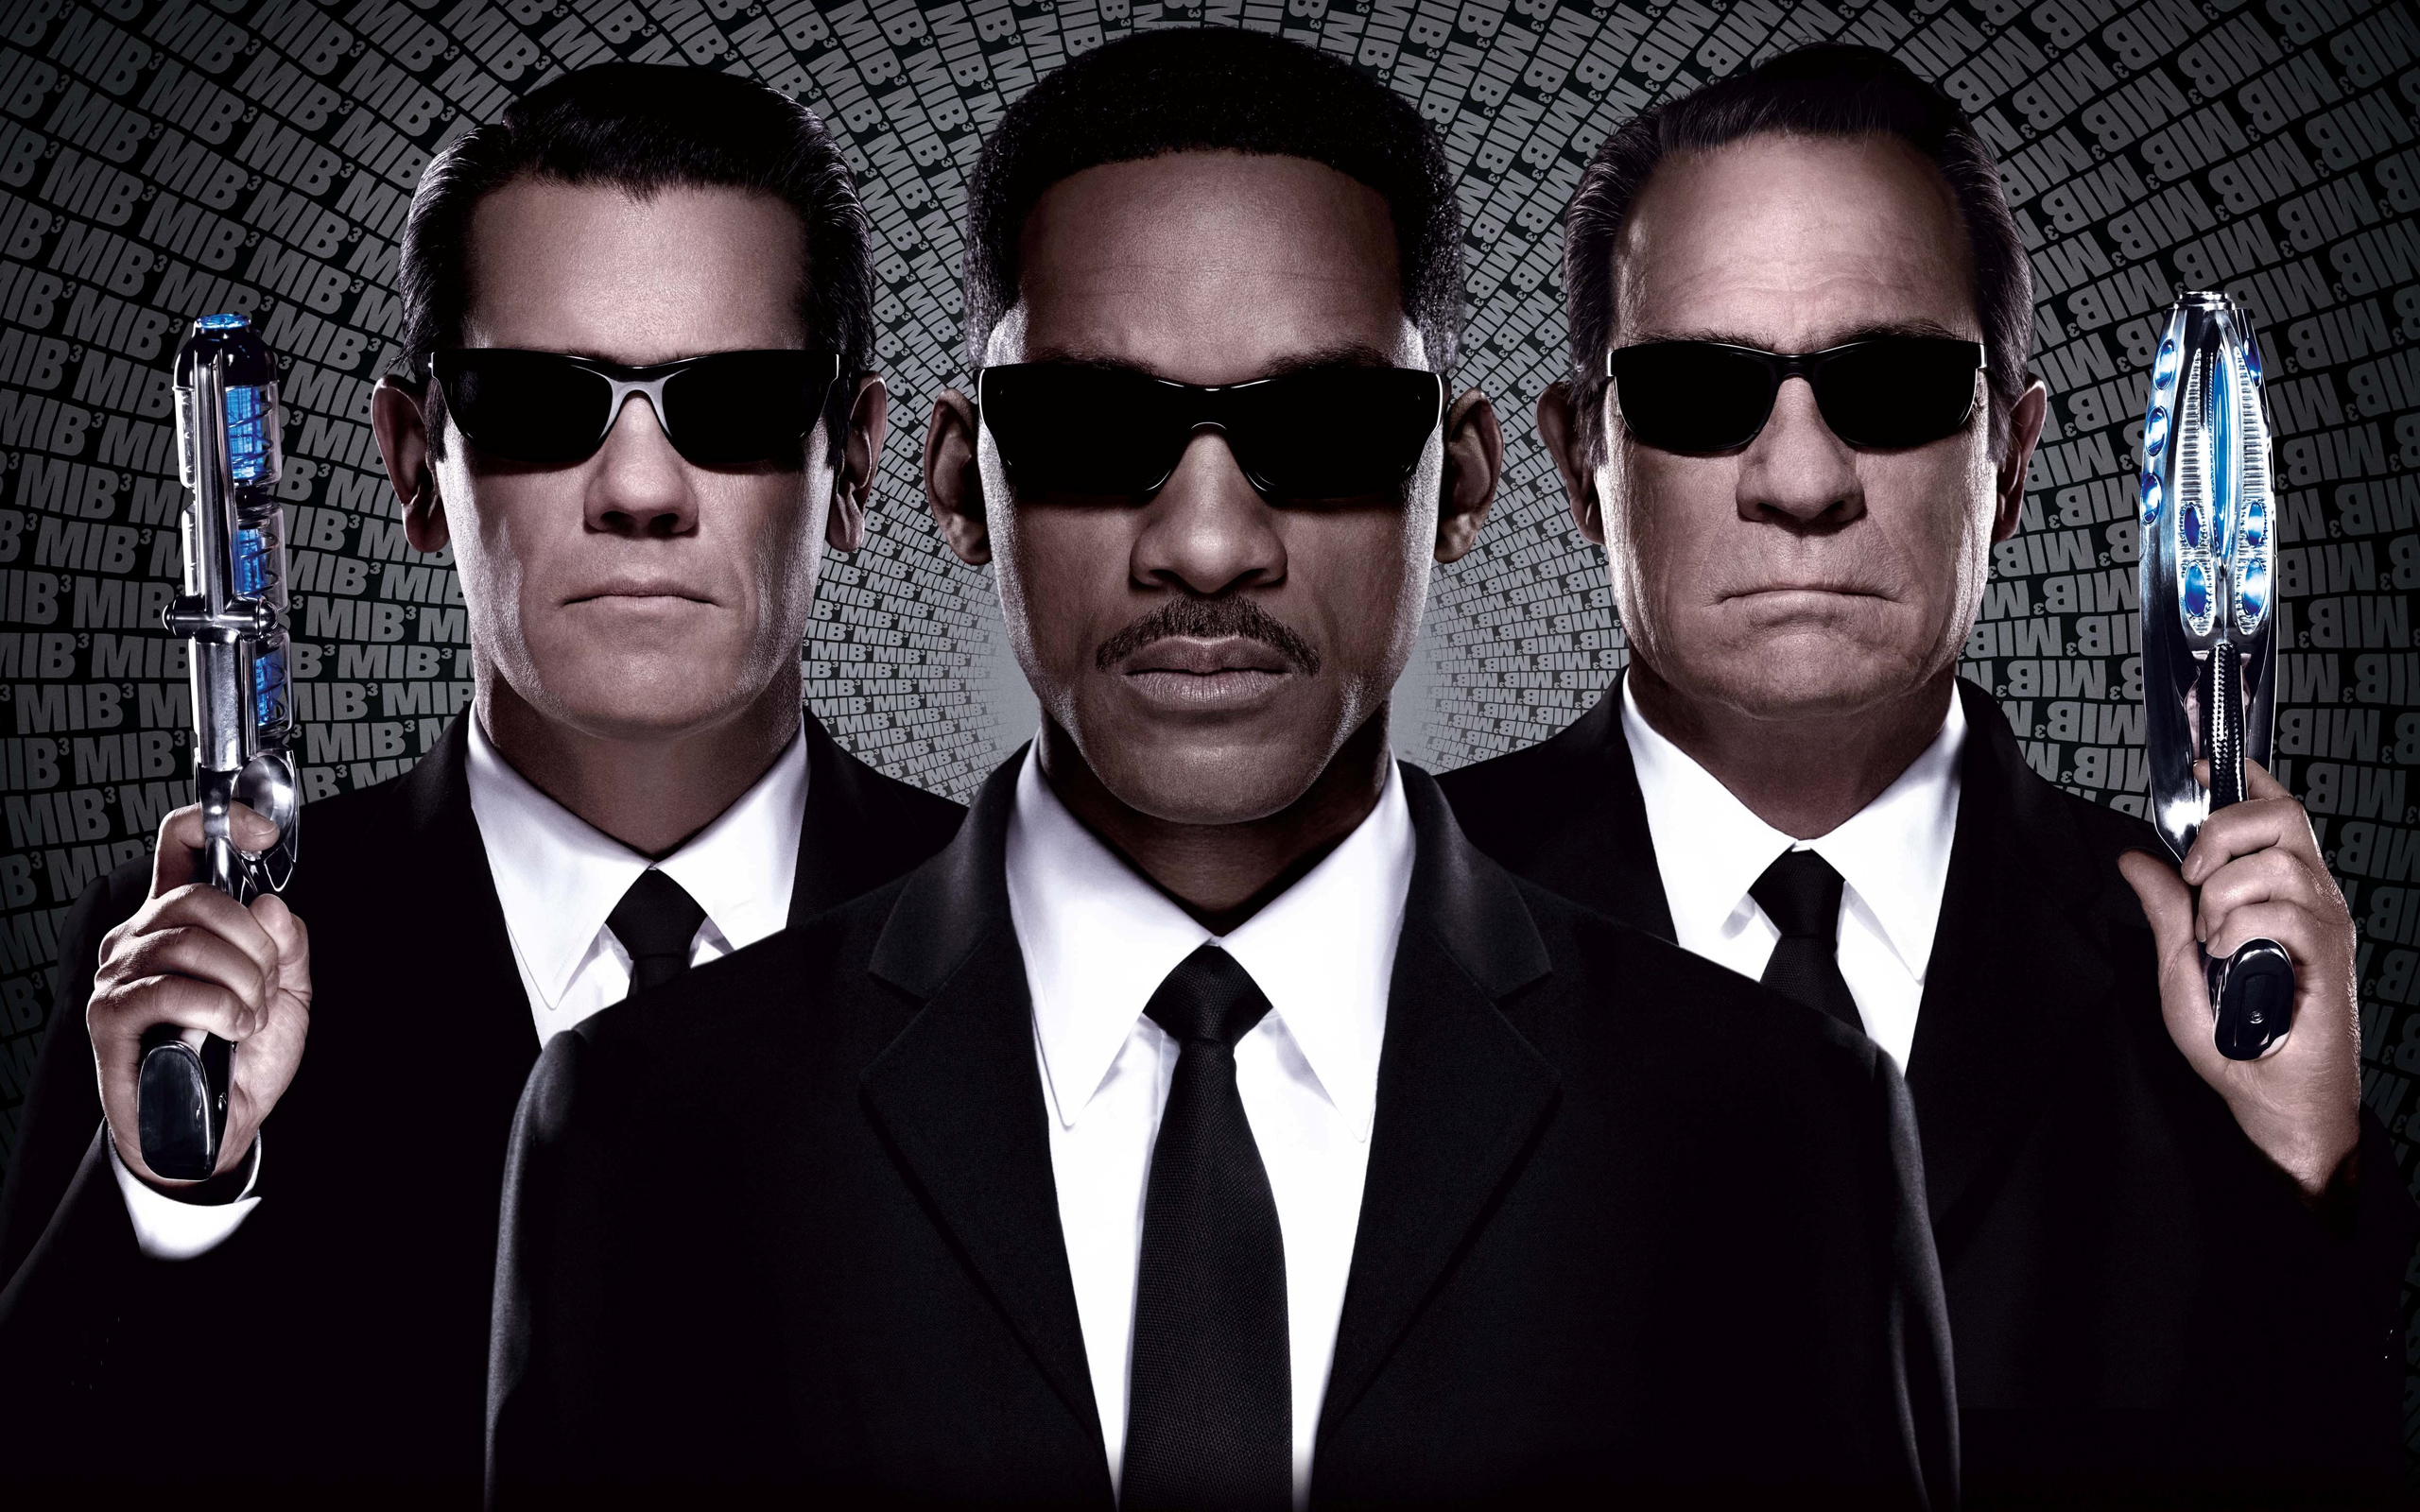 Men in Black 3 III 331.19 Kb